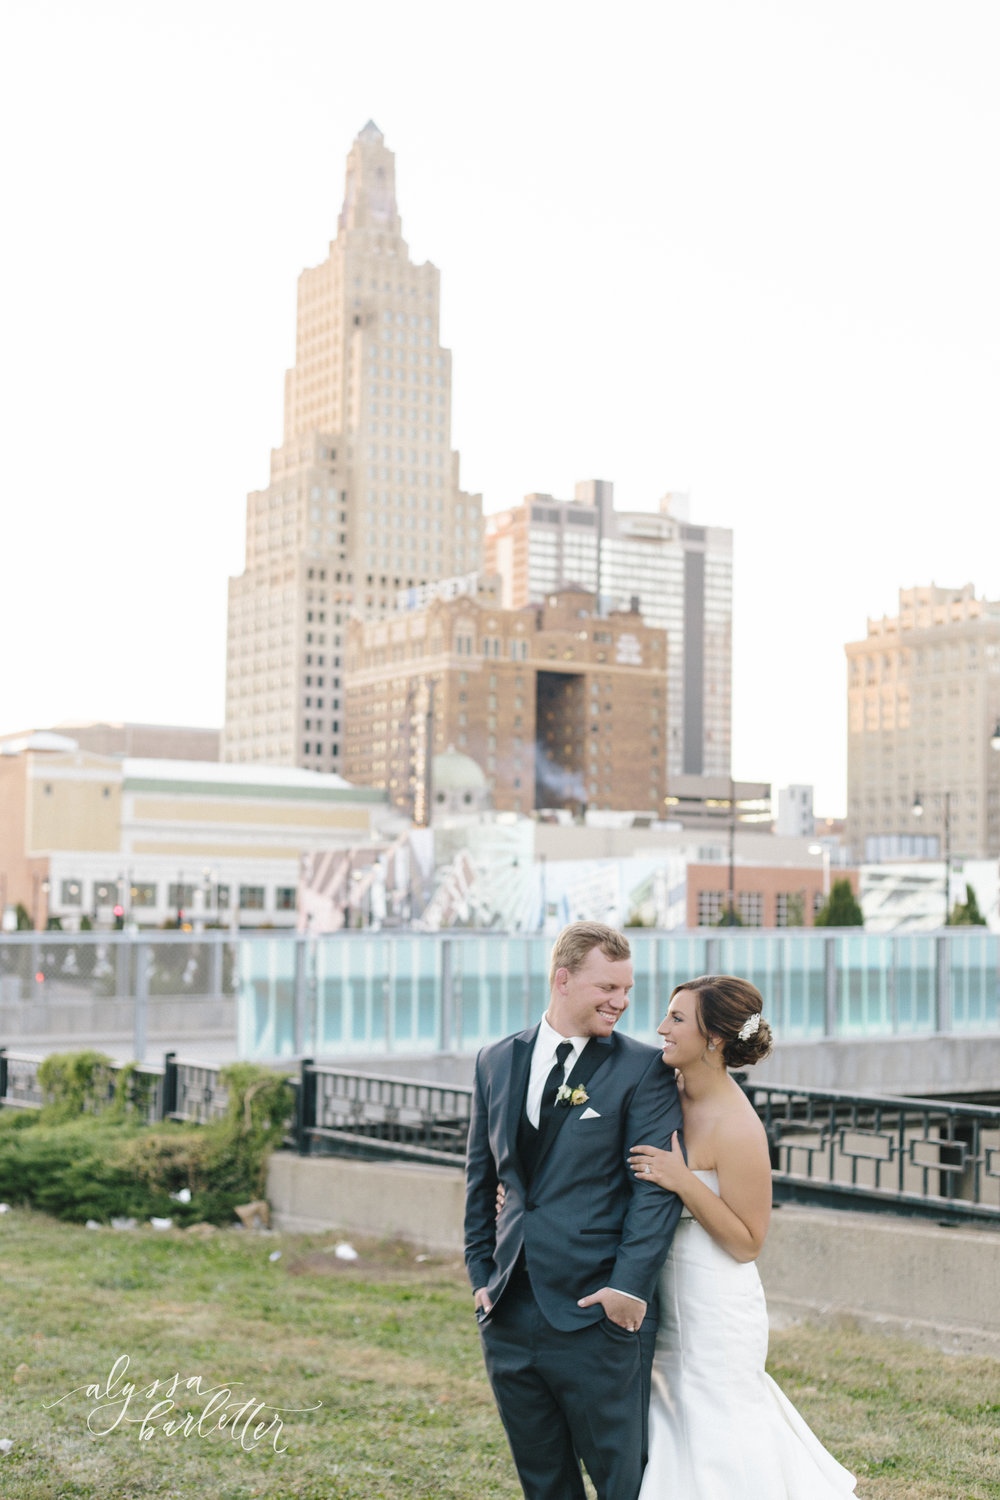 kansas city missouri wedding photographer downtown skyline bride groom